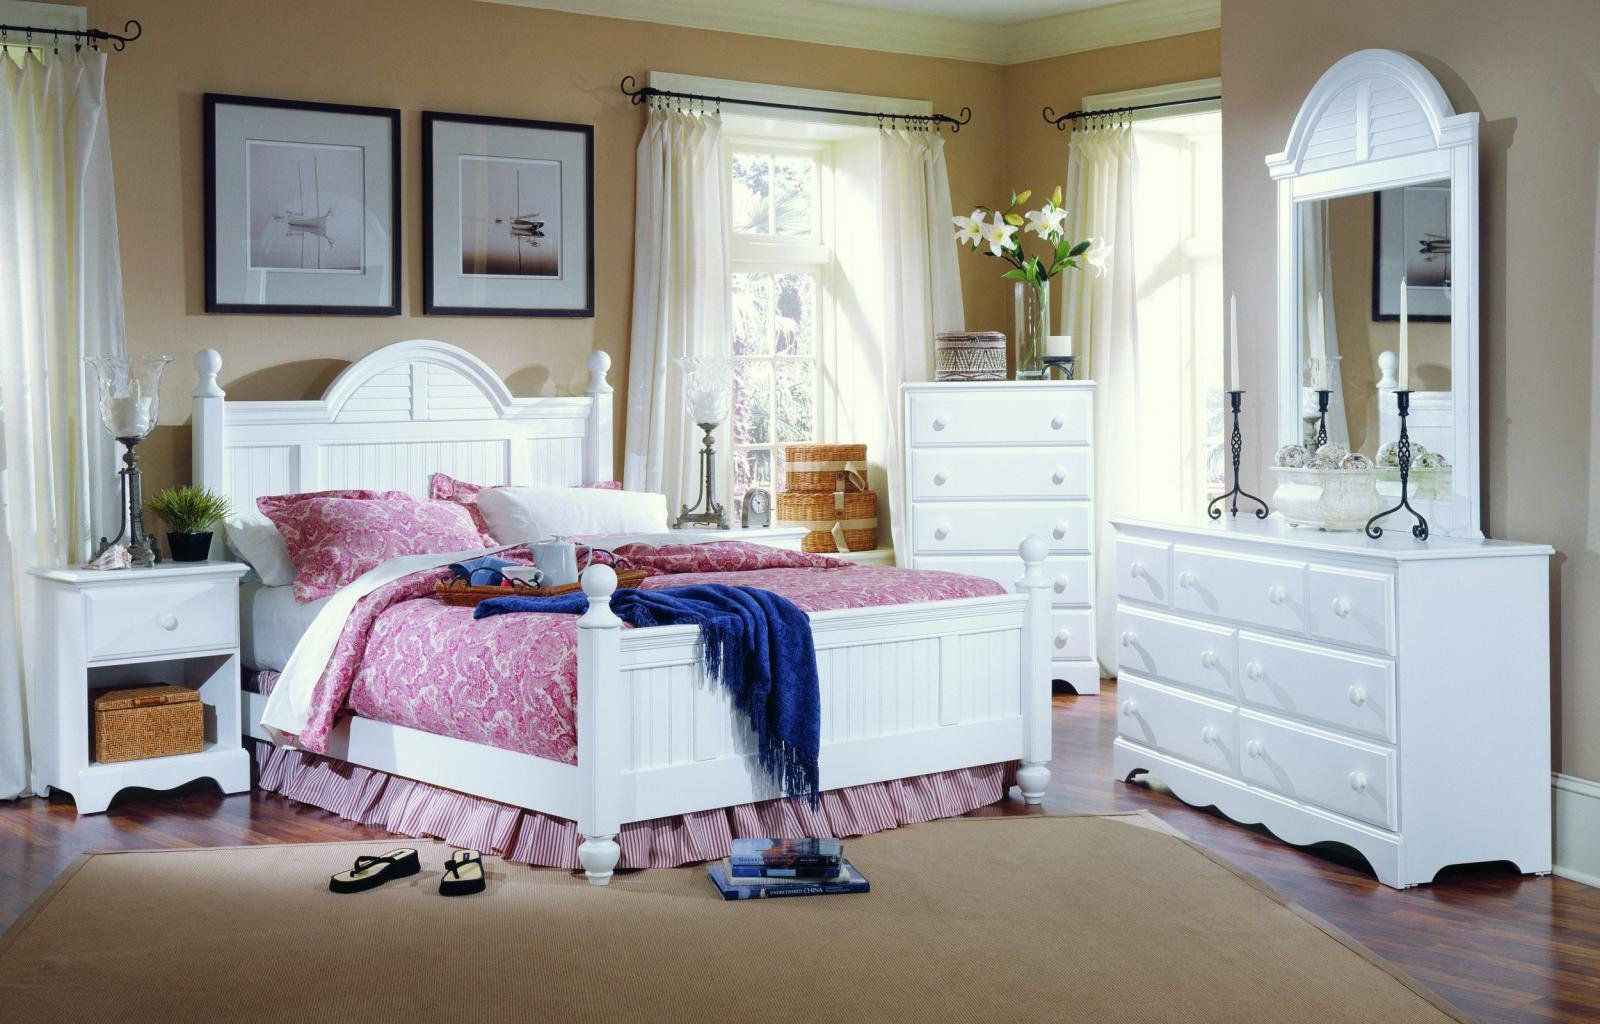 Free Download Bedroom Wallpaper Id228076 Hd 1600x1024 For Pc